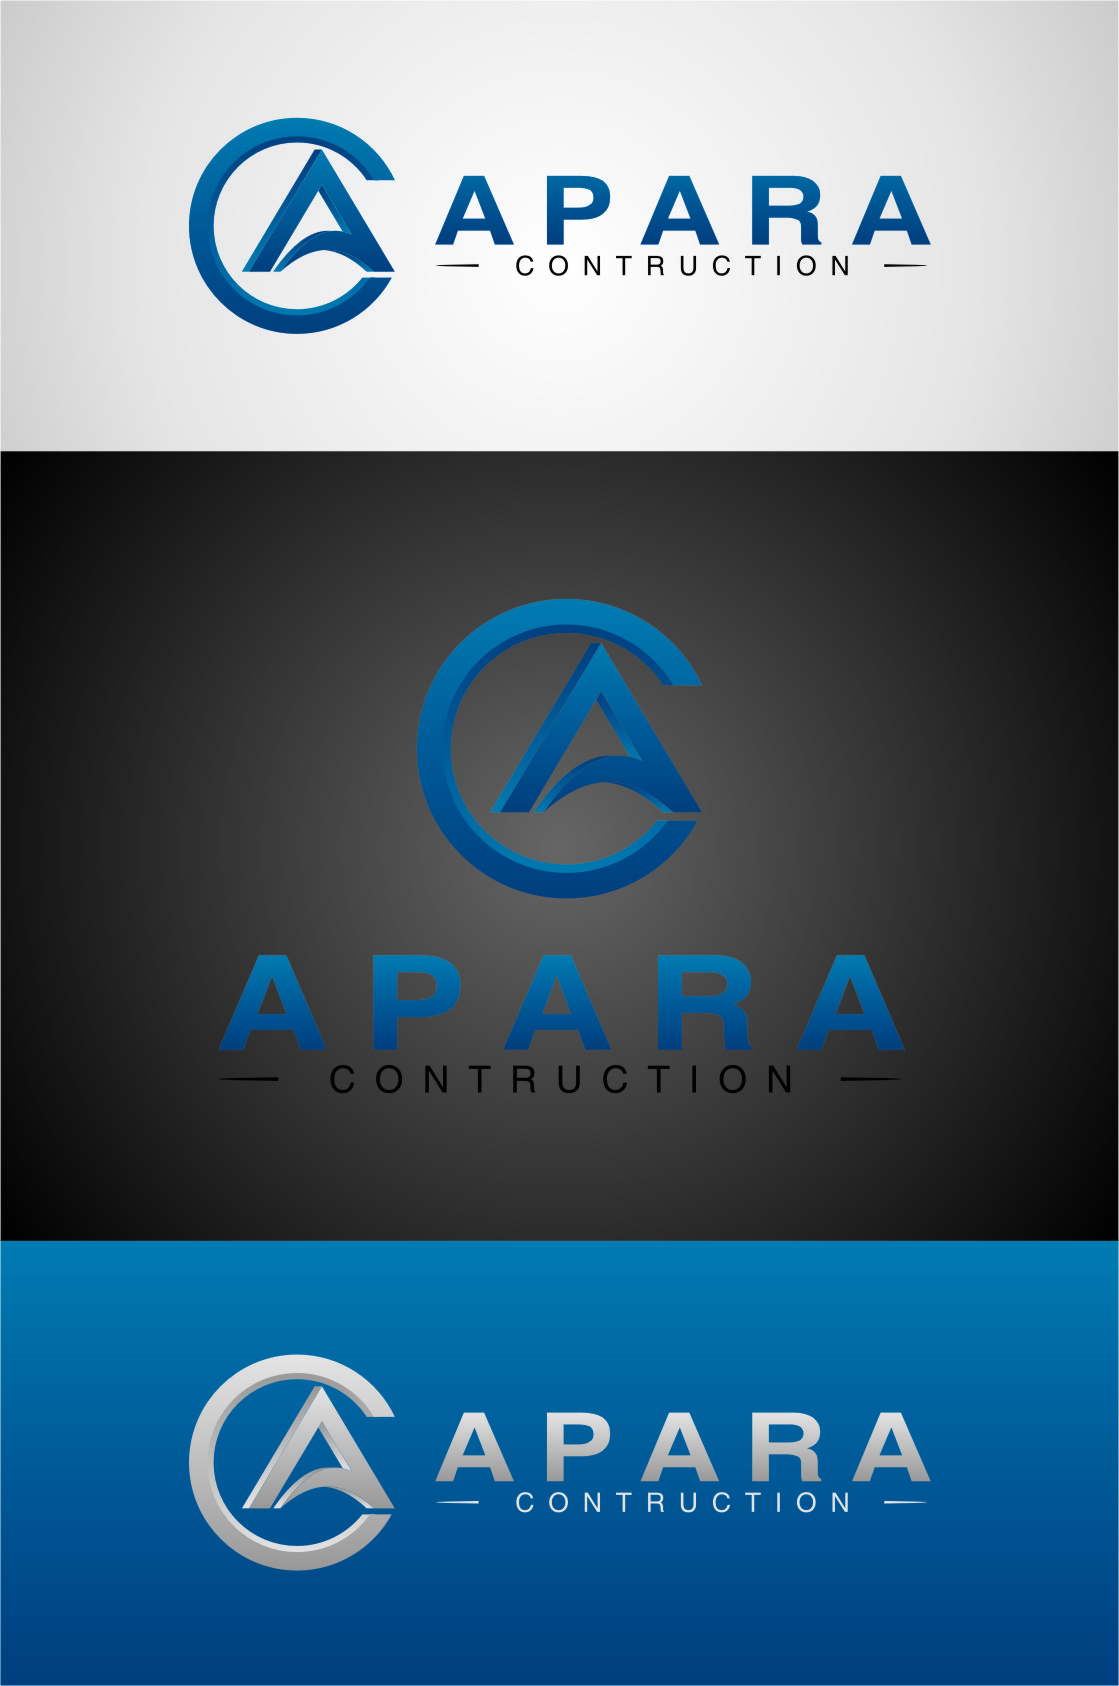 Logo Design by RasYa Muhammad Athaya - Entry No. 142 in the Logo Design Contest Apara Construction Logo Design.